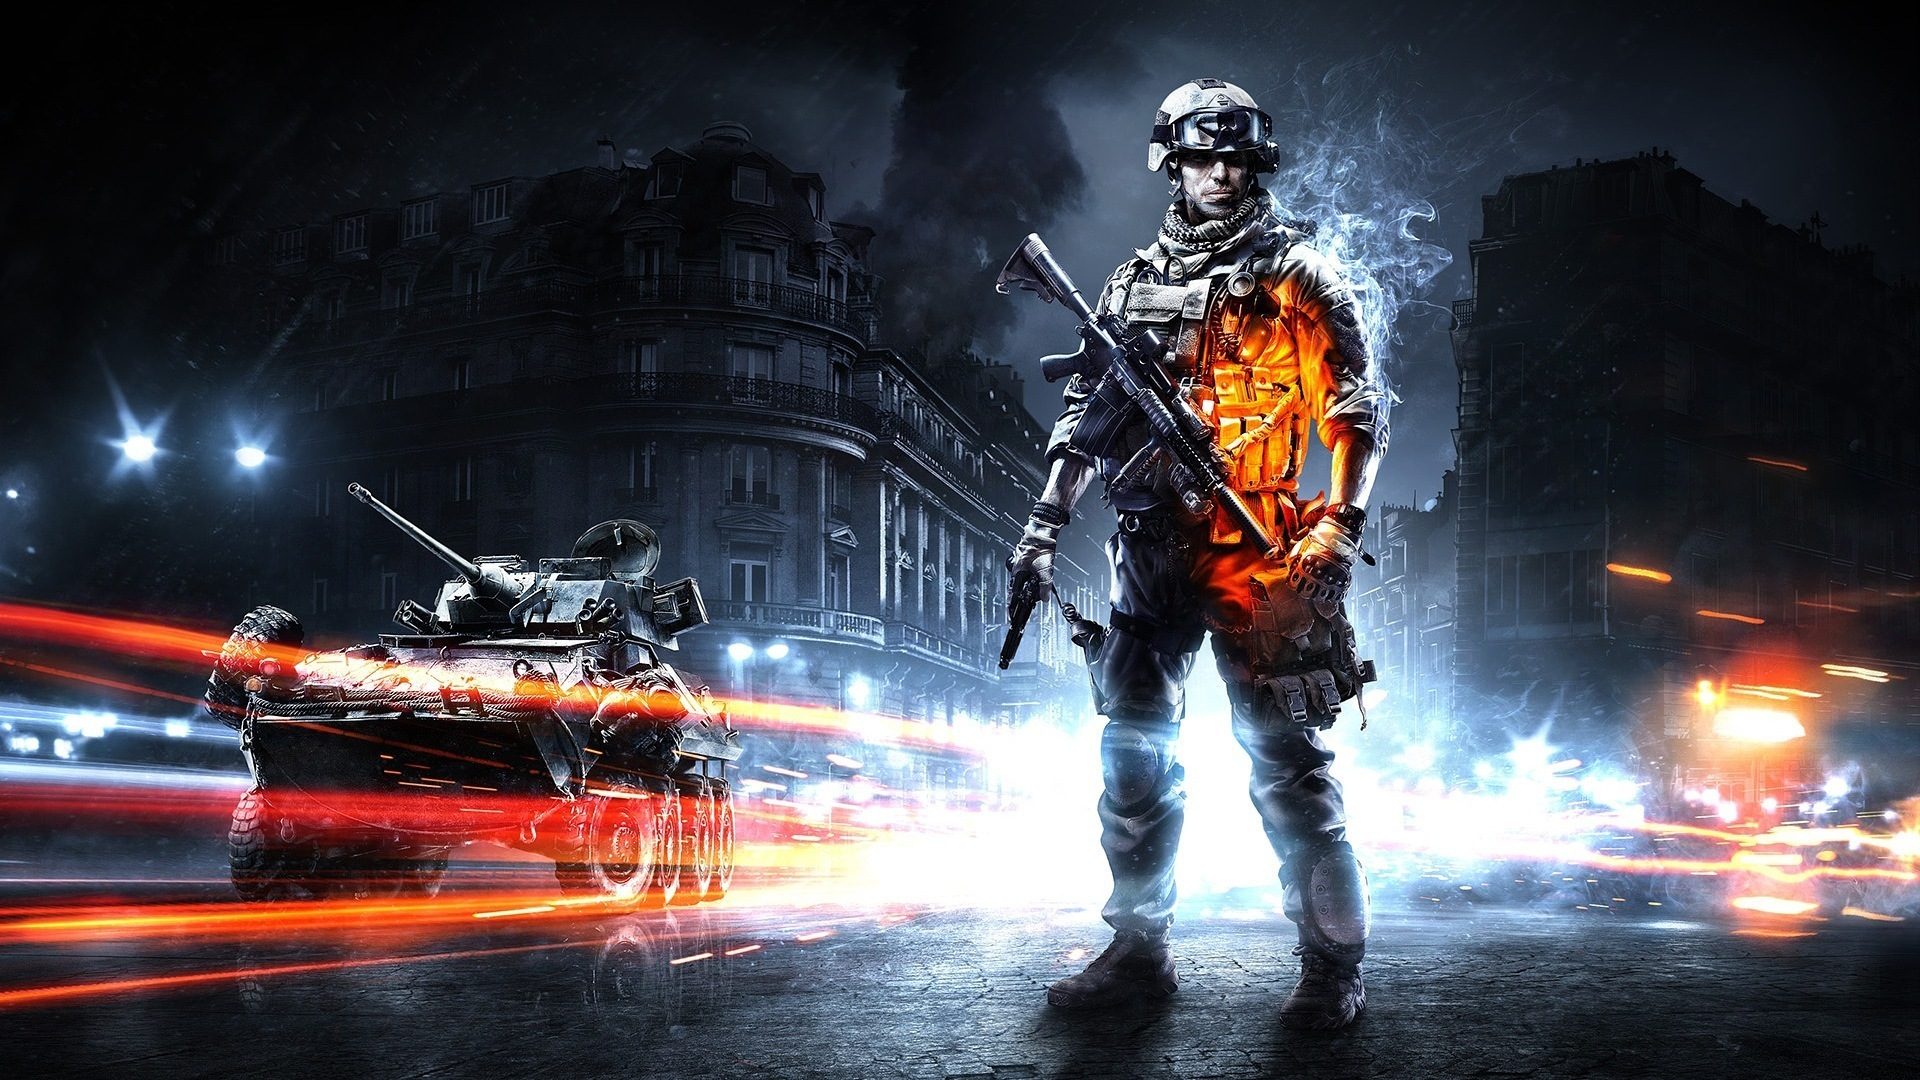 ... Wallpaper Abyss Everything Battlefield Video Game Battlefield 3 178948